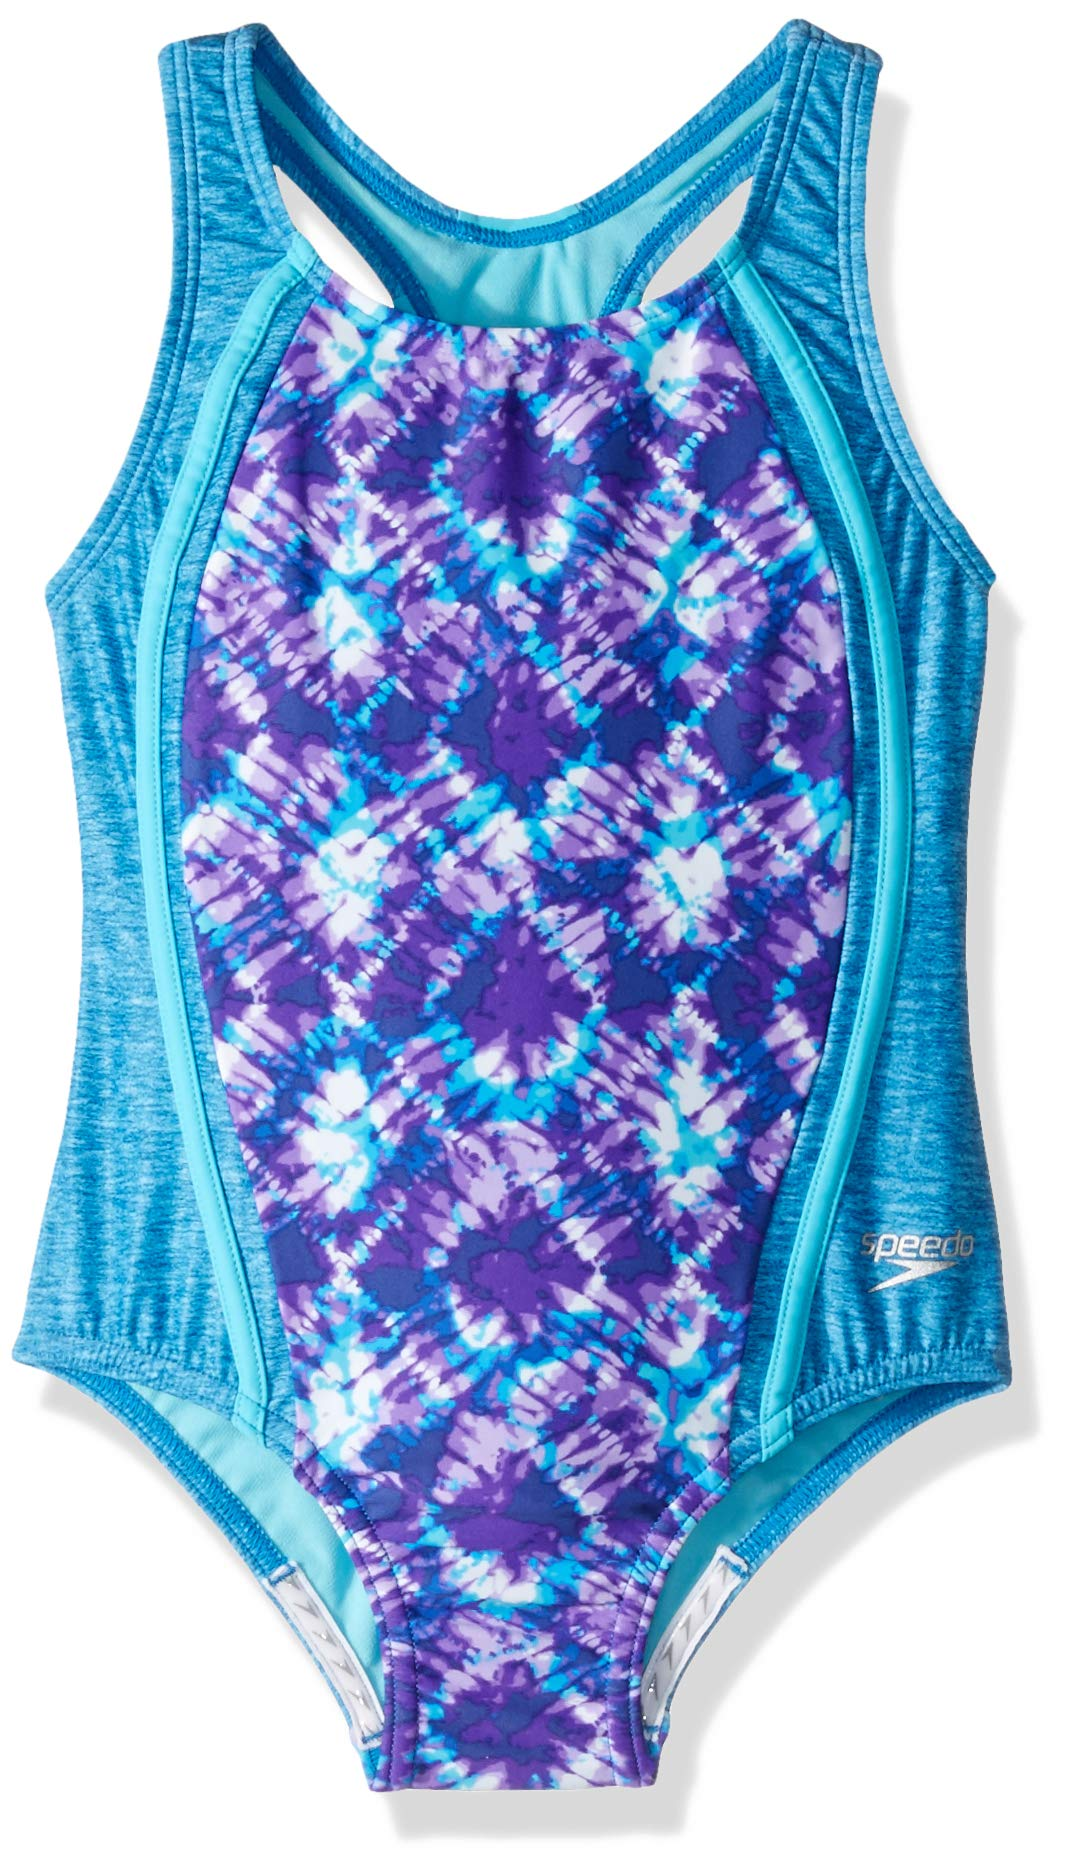 Speedo Girls Swimsuit One Piece Thick Strap Racer Back Printed - Manufacturer Discontinued